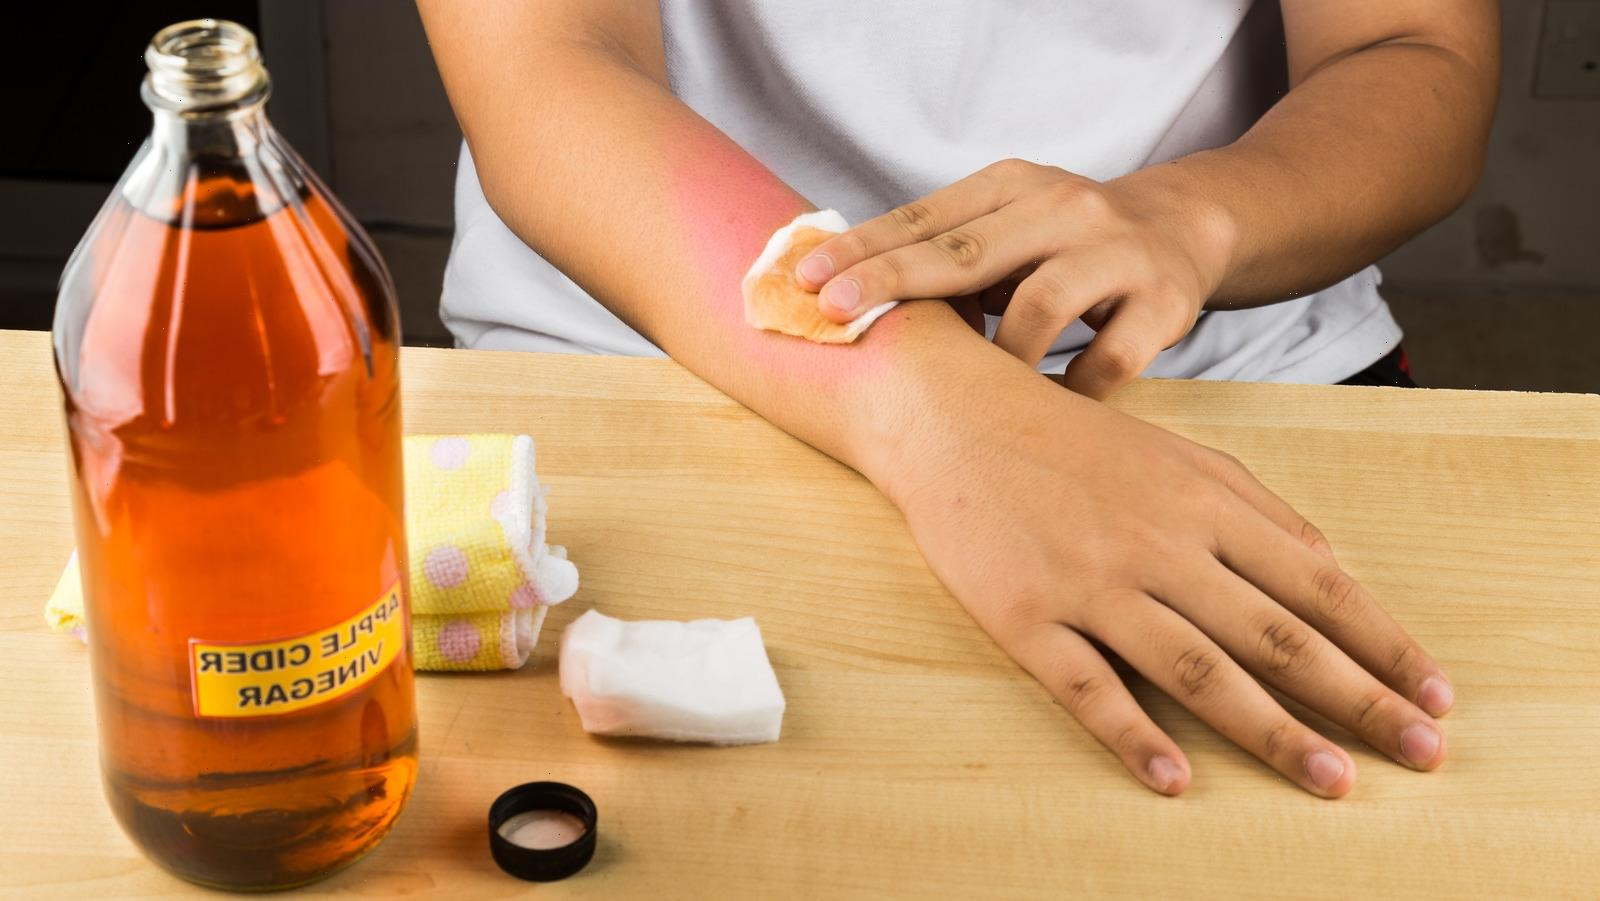 Can You Really Use Vinegar To Treat A Sunburn?